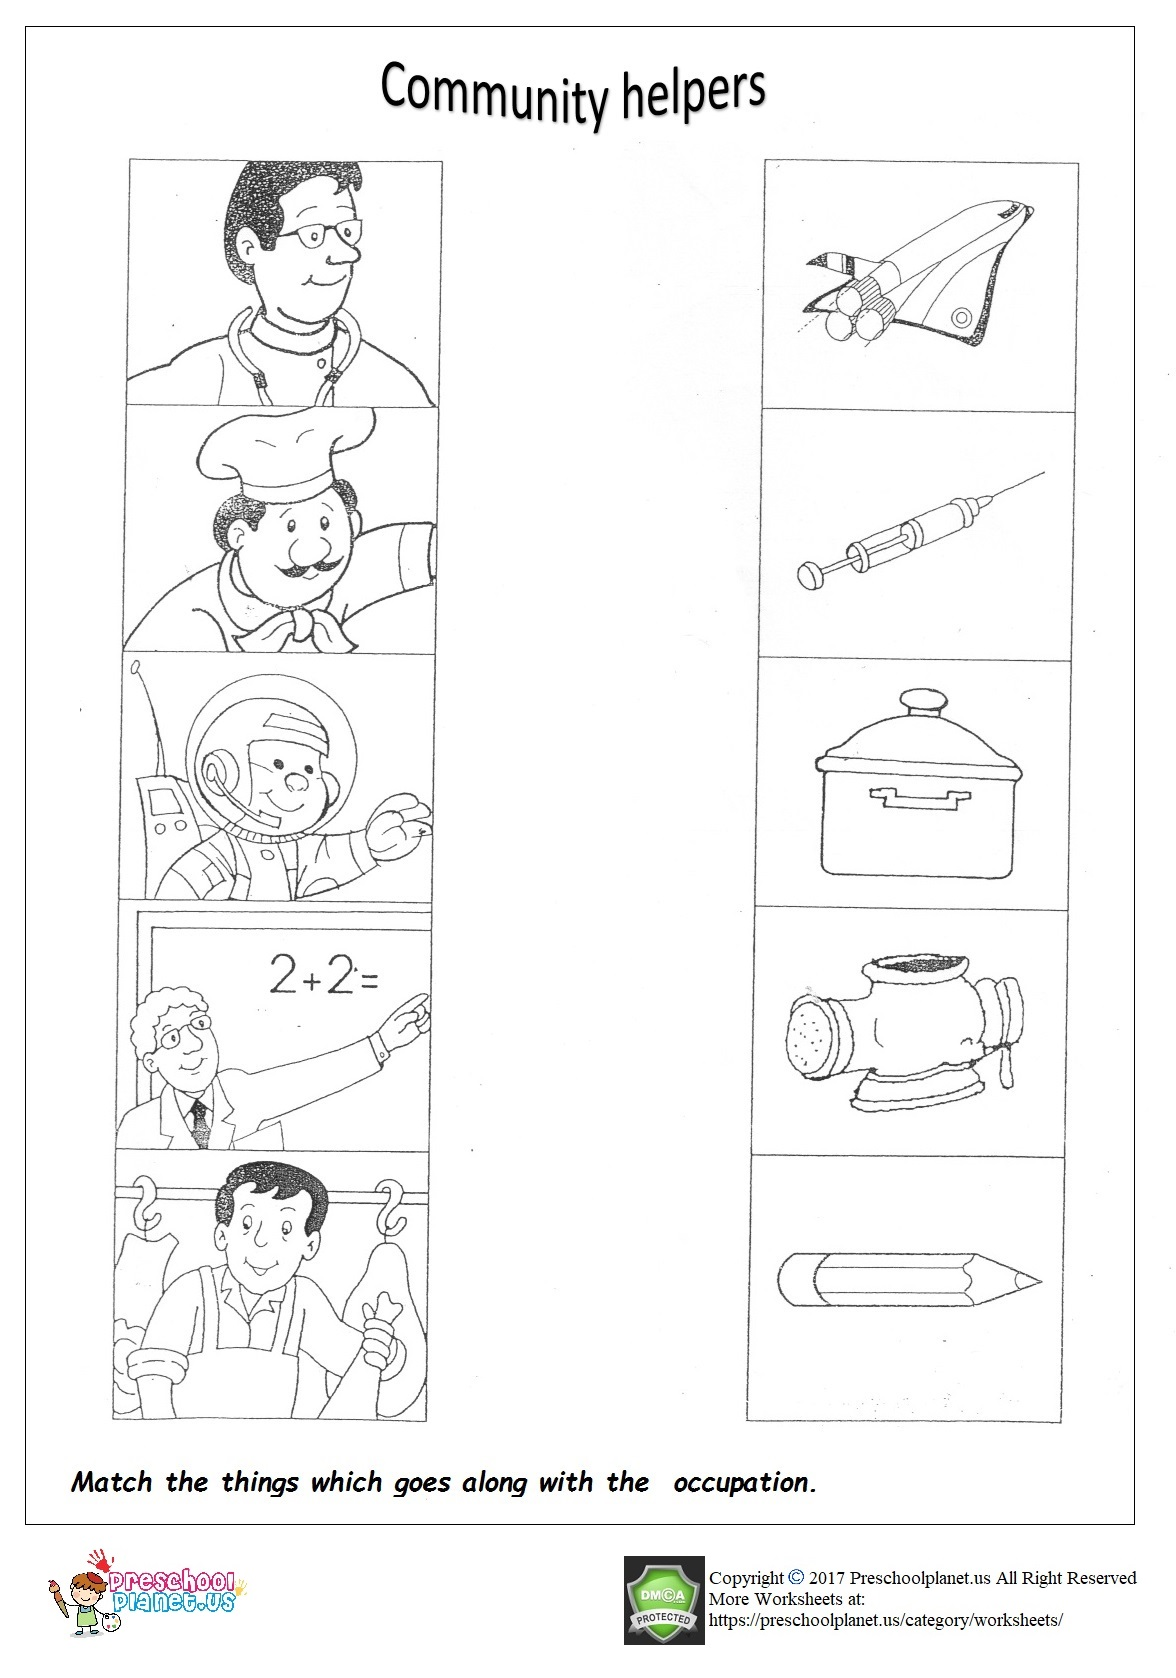 worksheet Community Worksheets community helpers worksheet for kindergarten